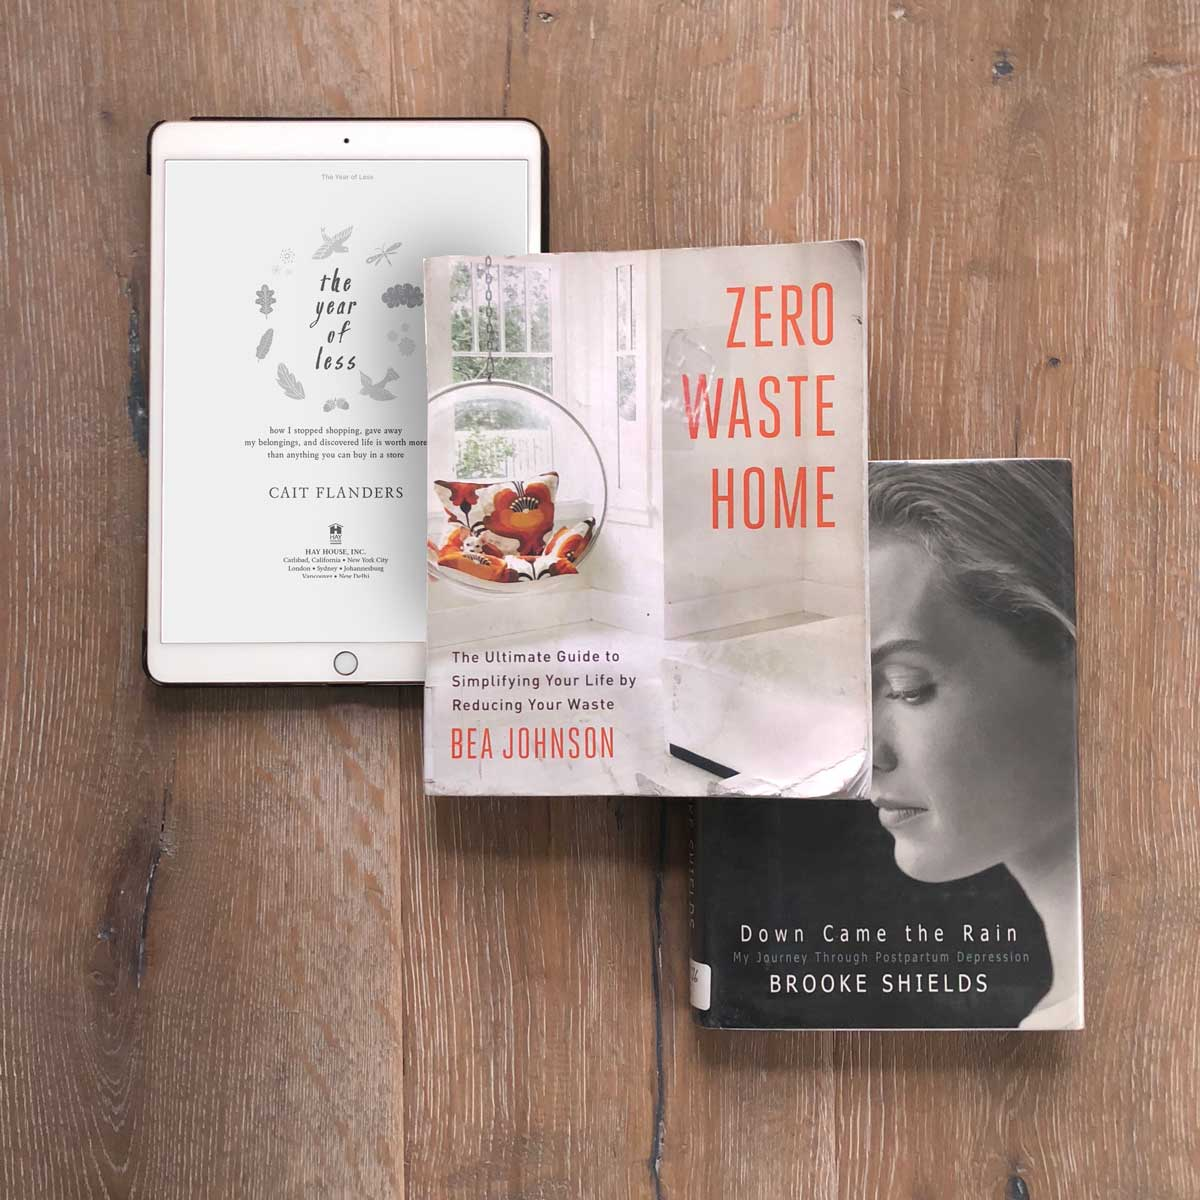 Library books - The Year of Less Cait Flanders, Zero Waste Home Bea Johnson, Down Came the Rain Brooke Shields